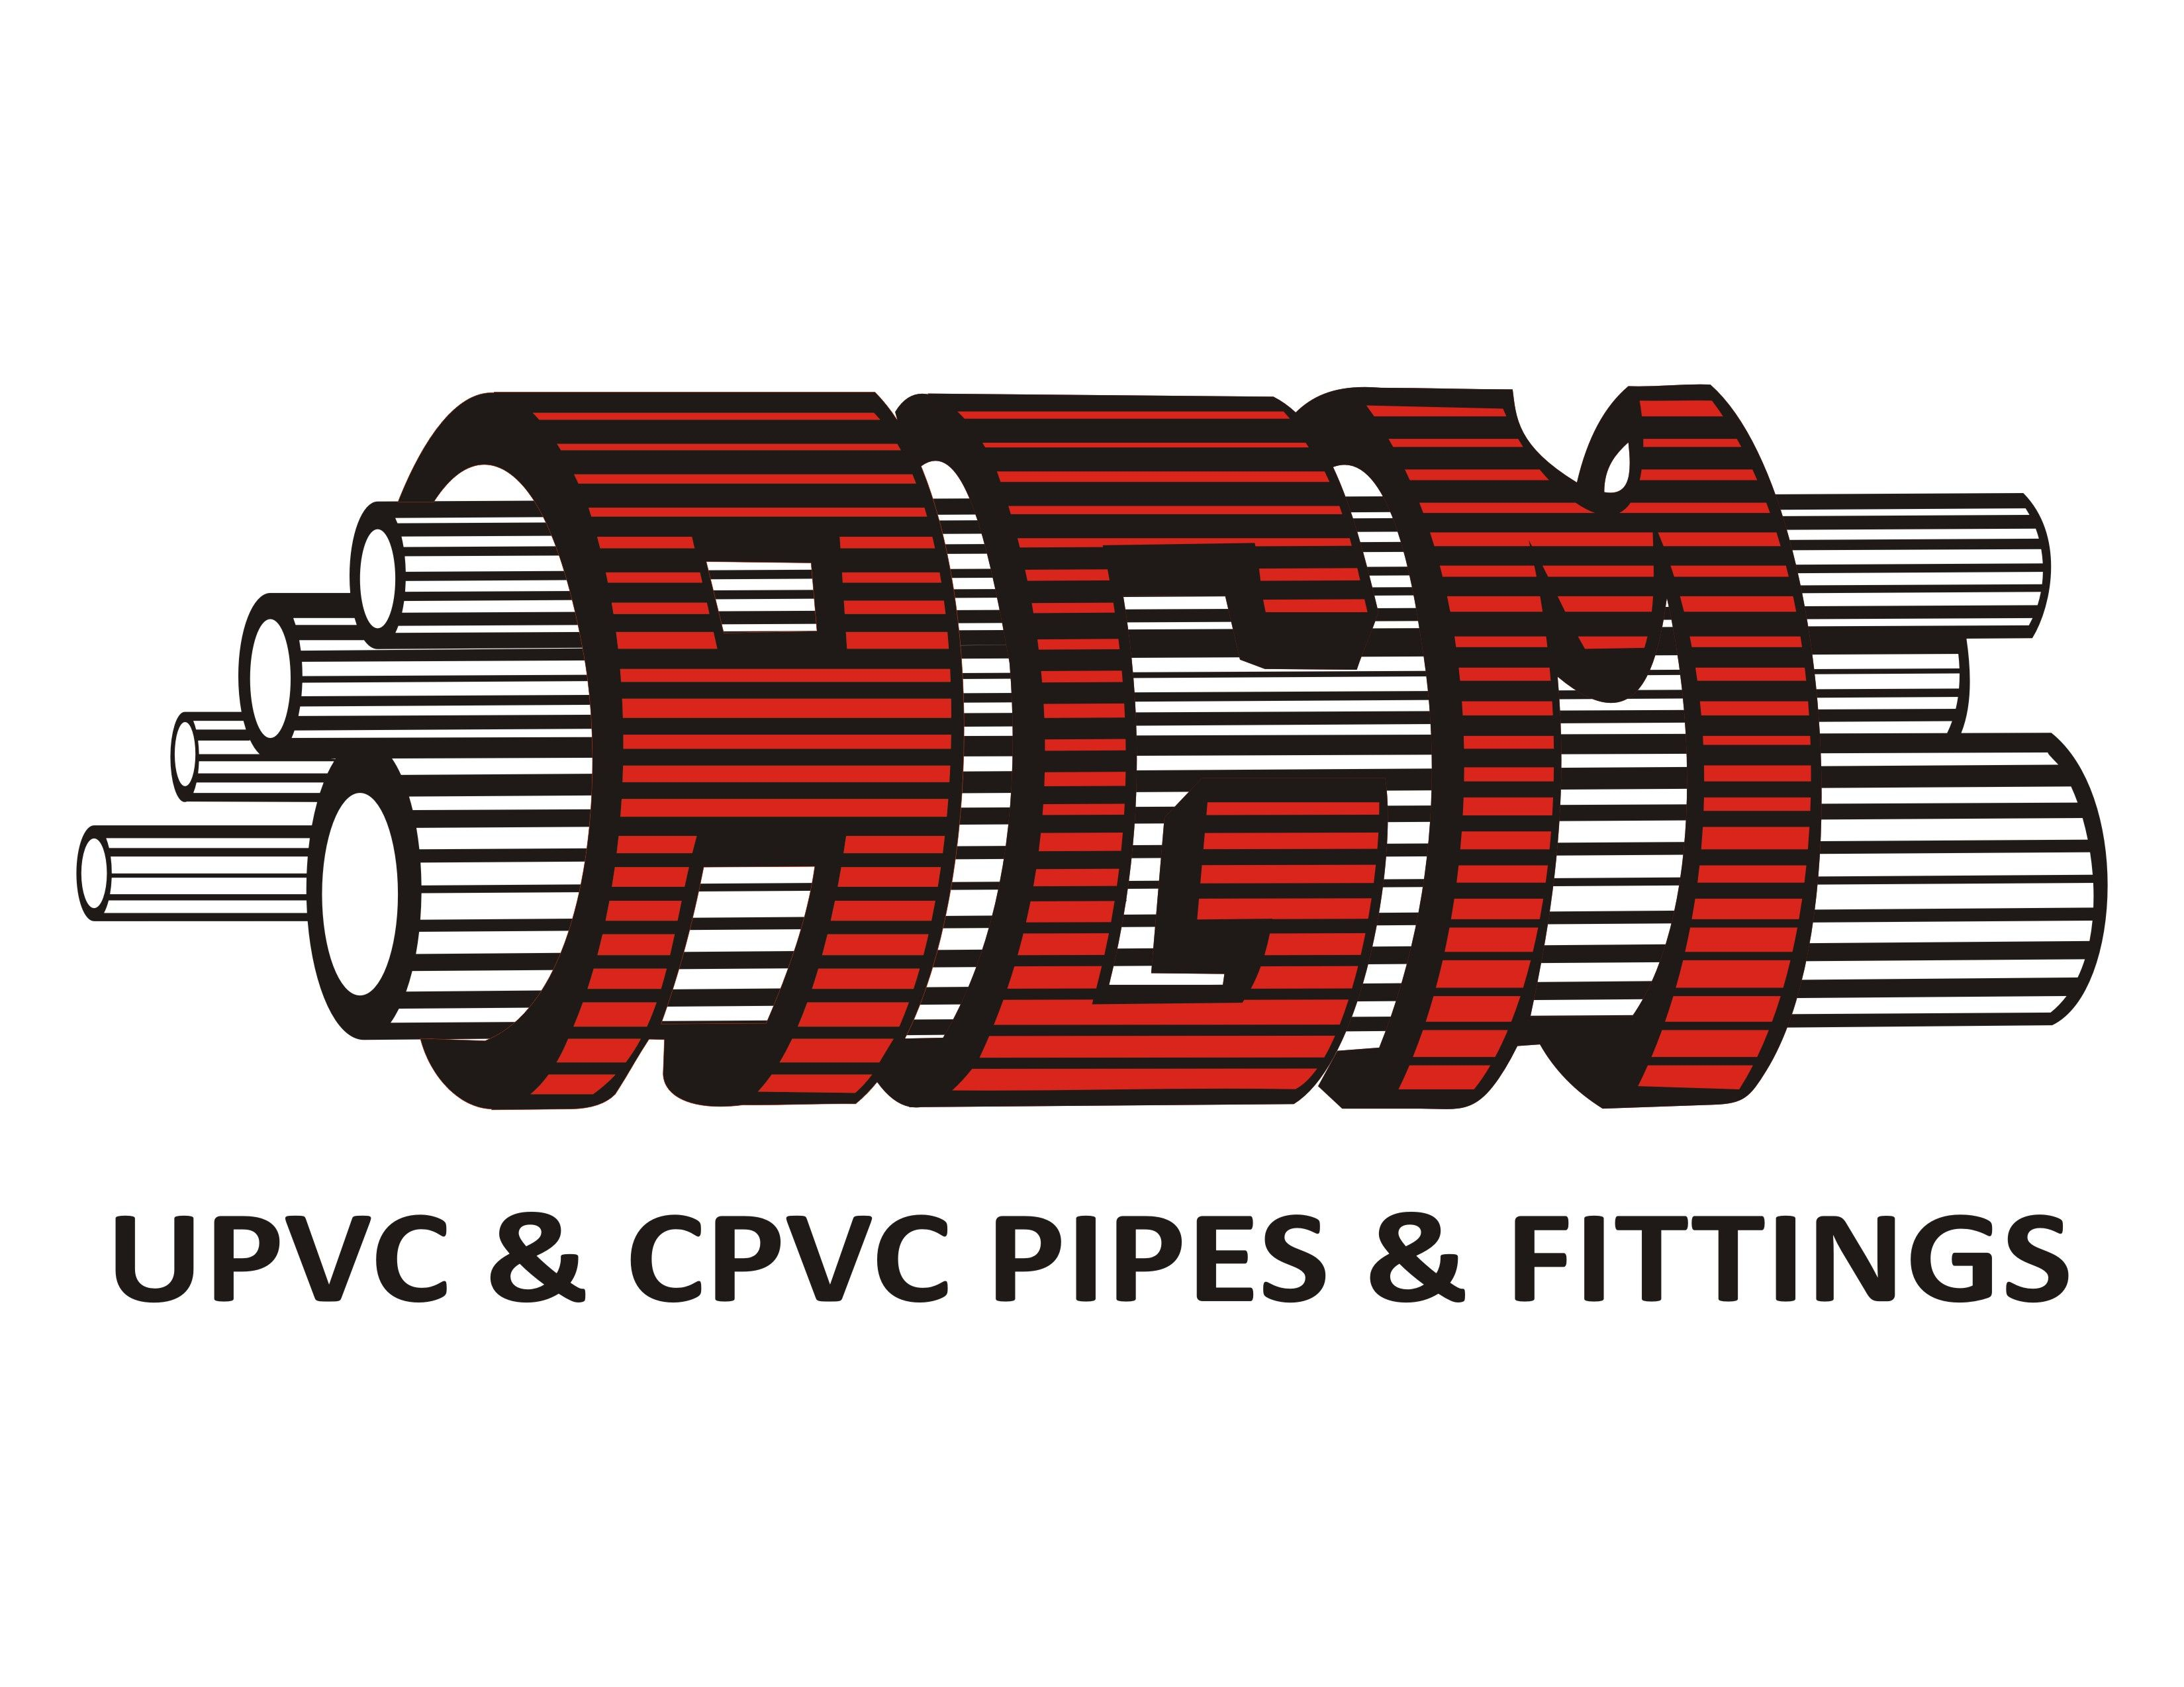 AGM pvc Pipes and fittings cpvc for hot water supply & upvc